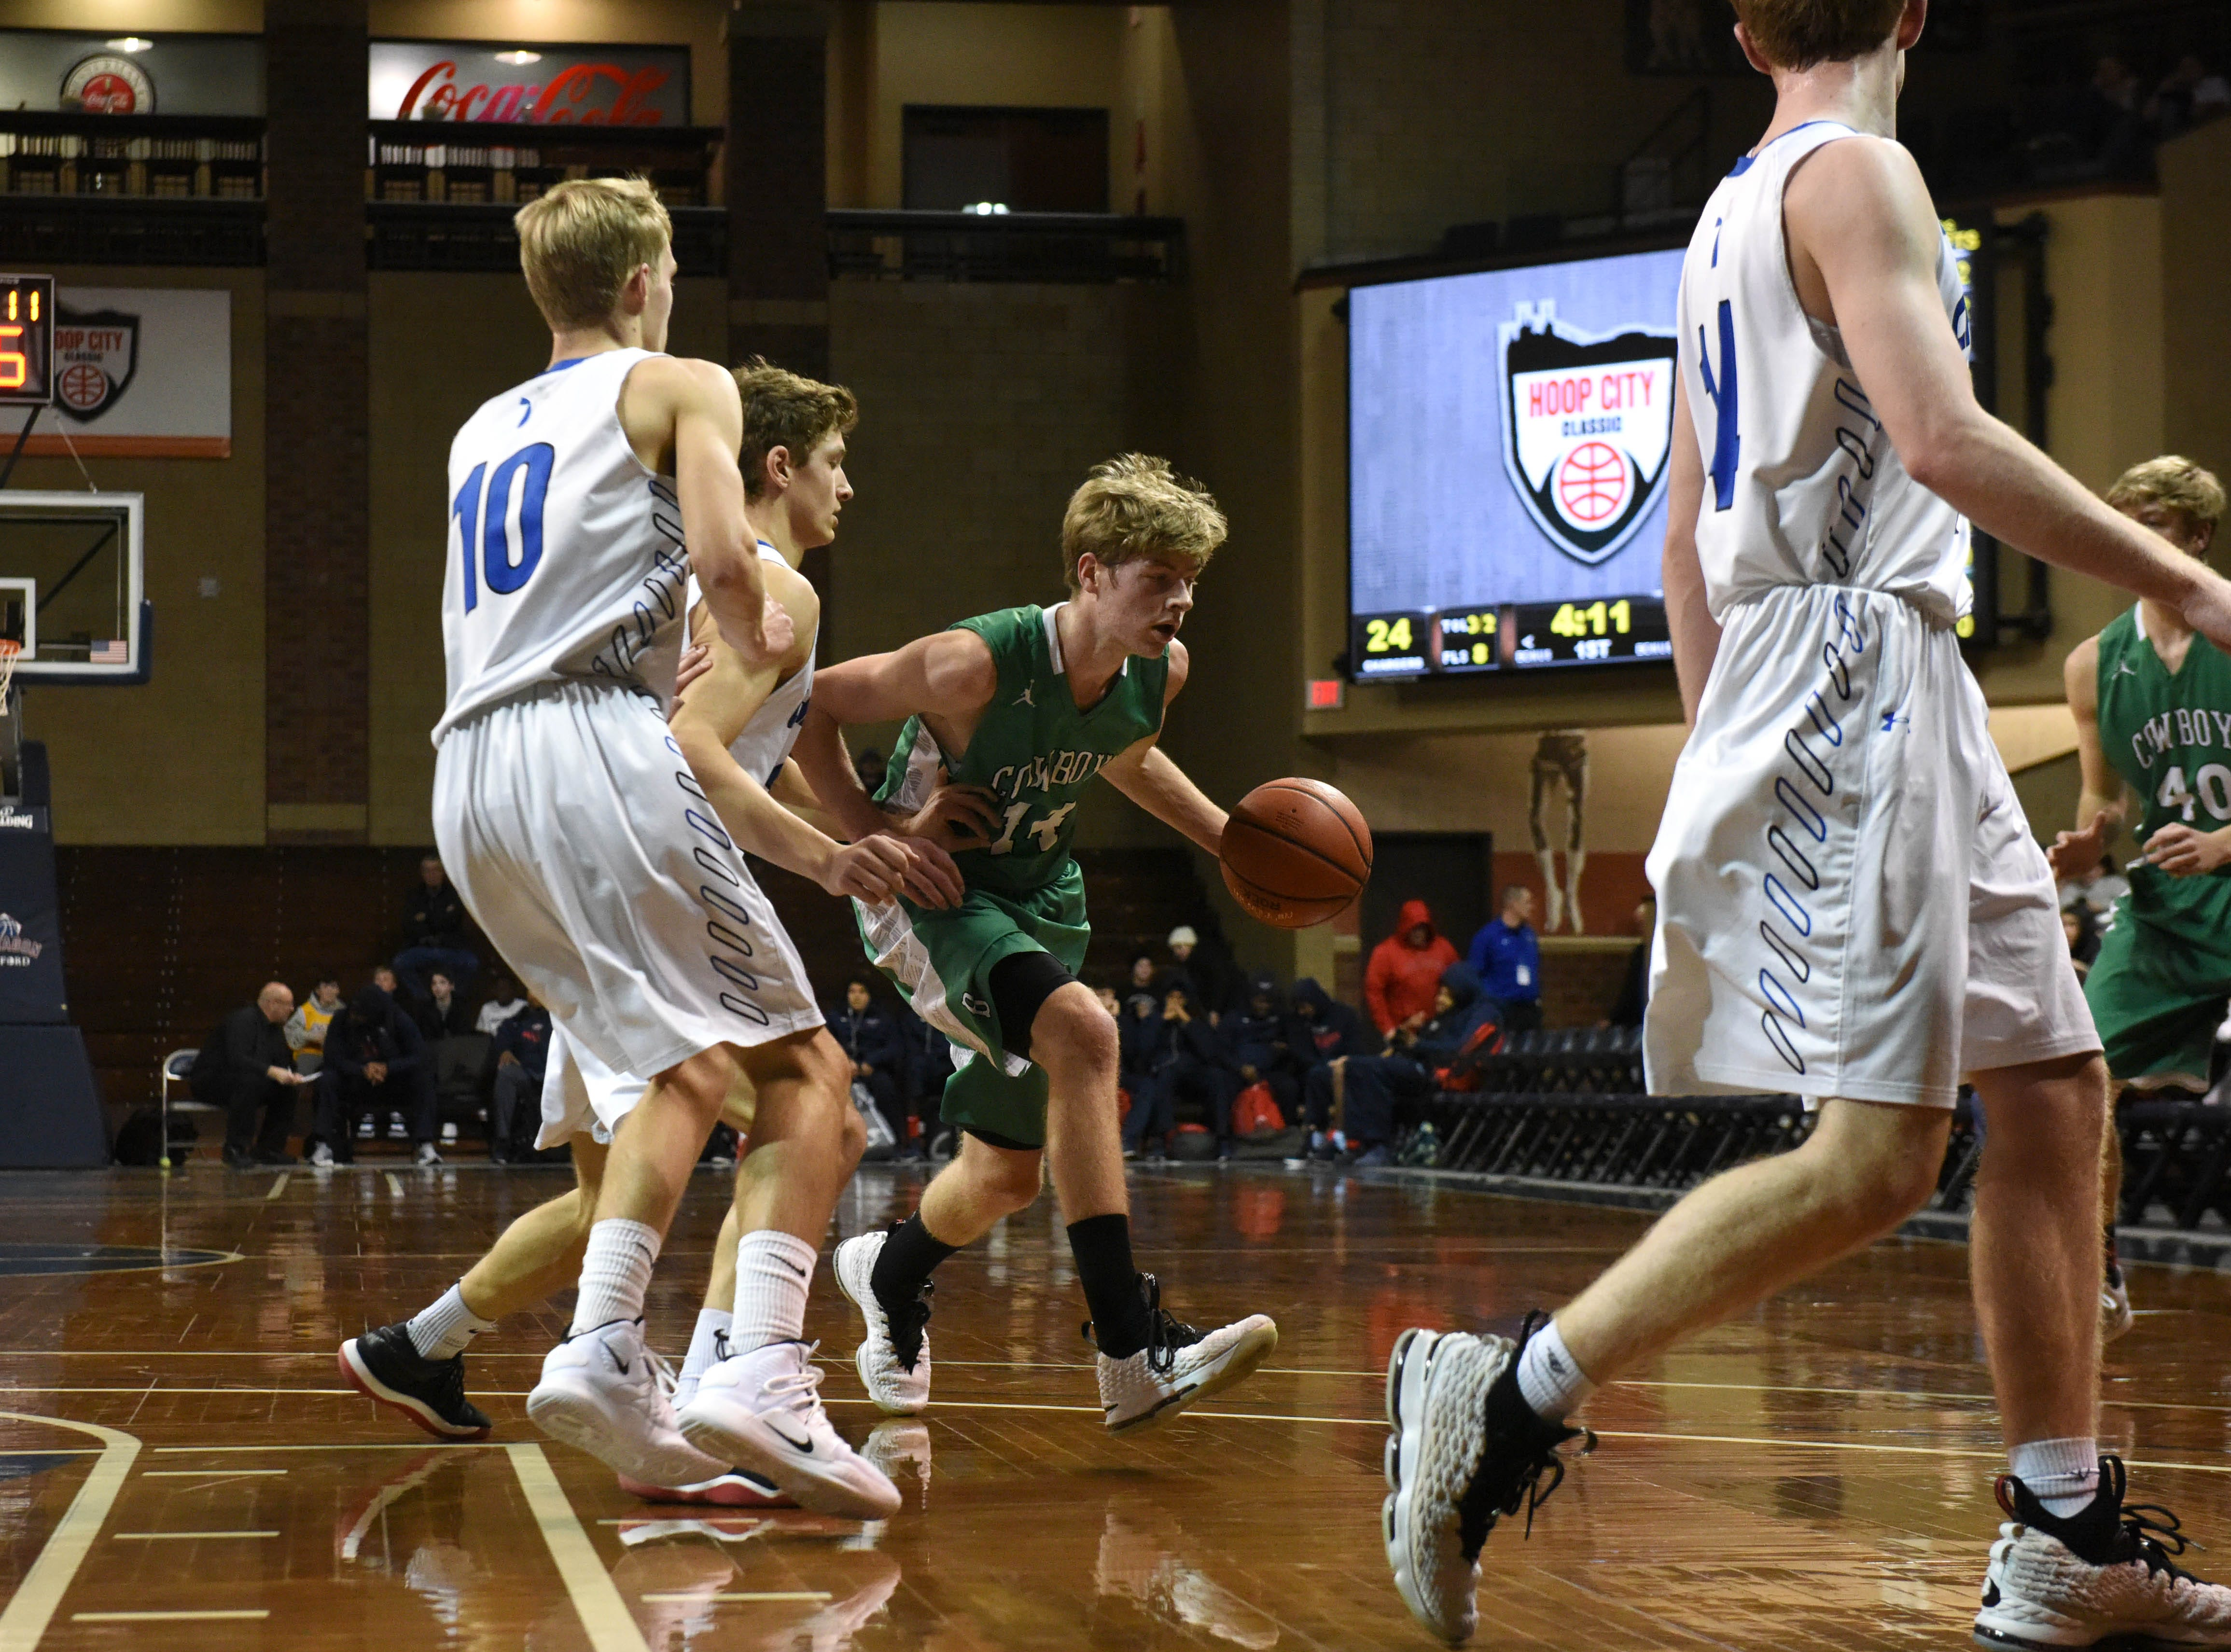 Breckenridge's Jacob Marsh (14) dribbles the ball past Sioux Falls Christian players at the Hoop City Classic at the Sanford Pentagon in Sioux Falls, S.D., Saturday, Dec. 29, 2018.